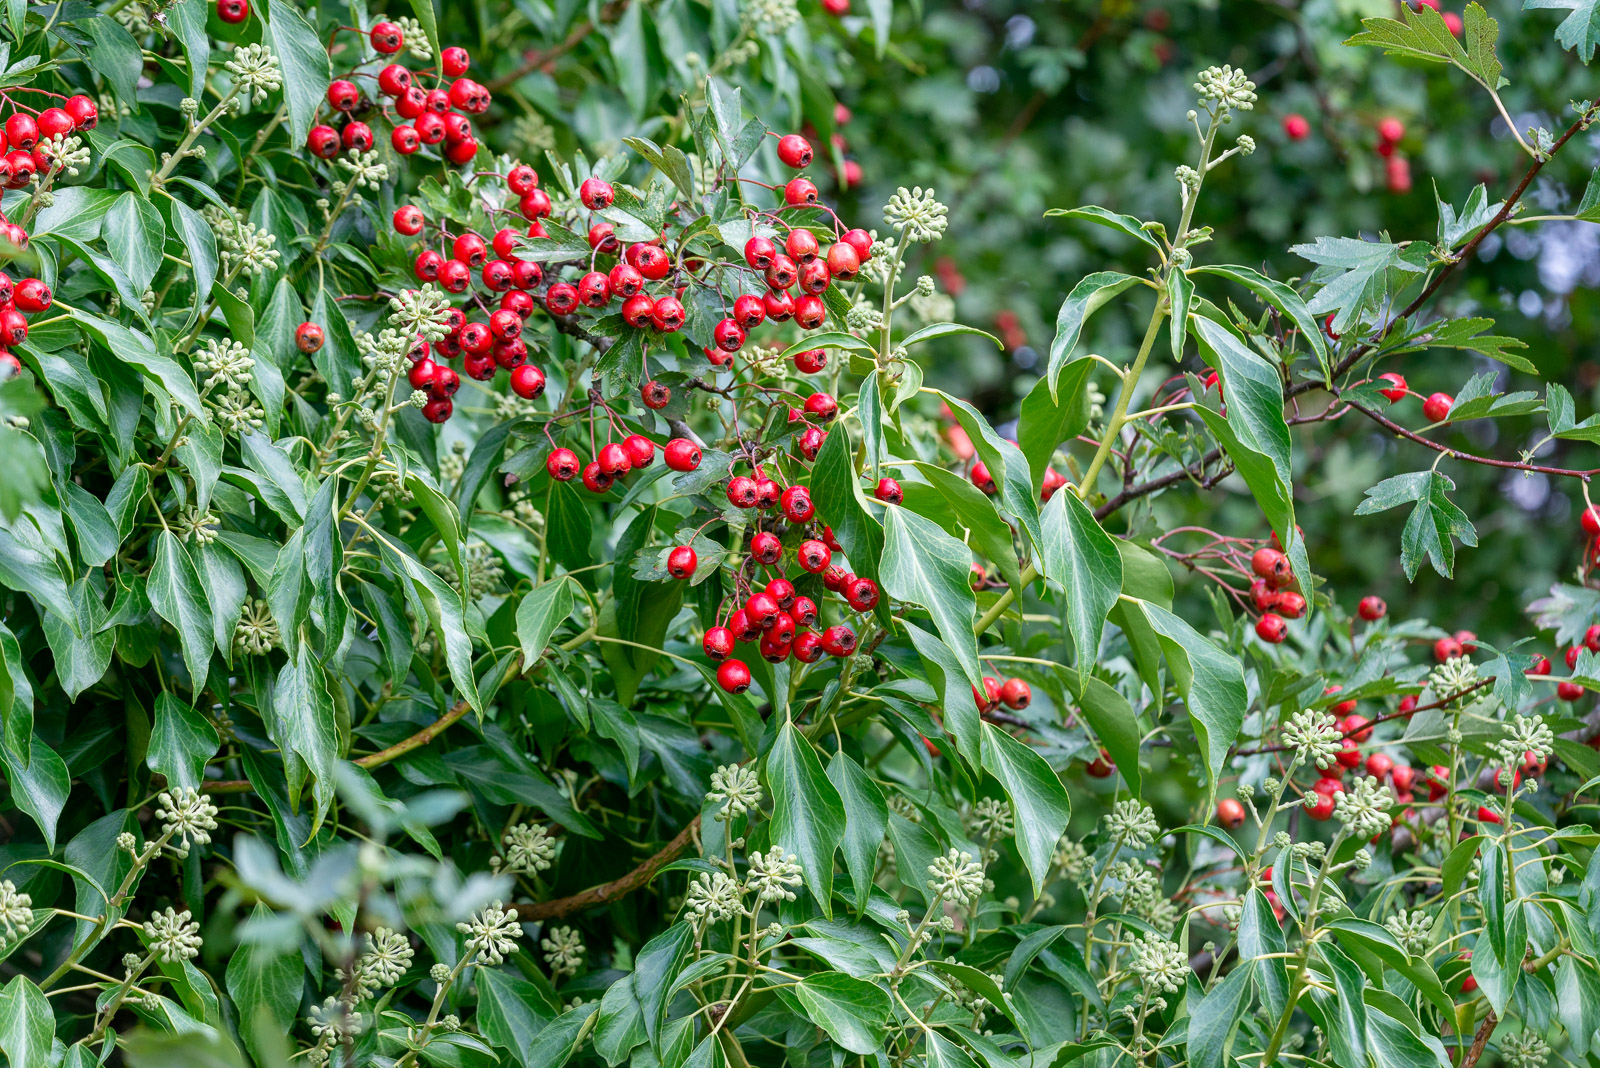 Hawthorn Berries and Ivy Flowers - Lynchcombe, Somerset, UK. ID 825_7574